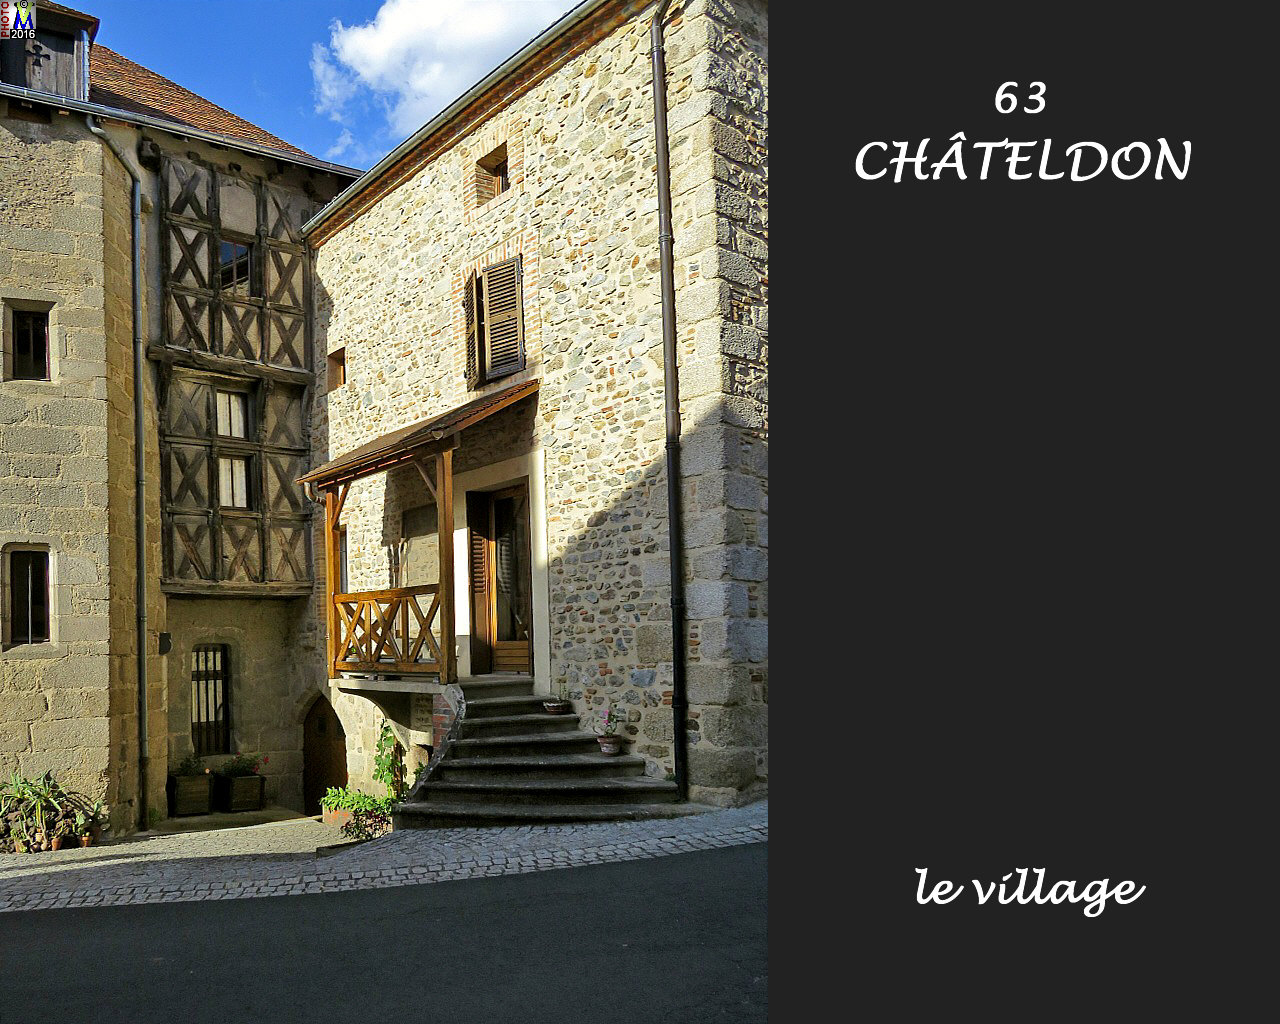 63CHATELDON_village_122.jpg